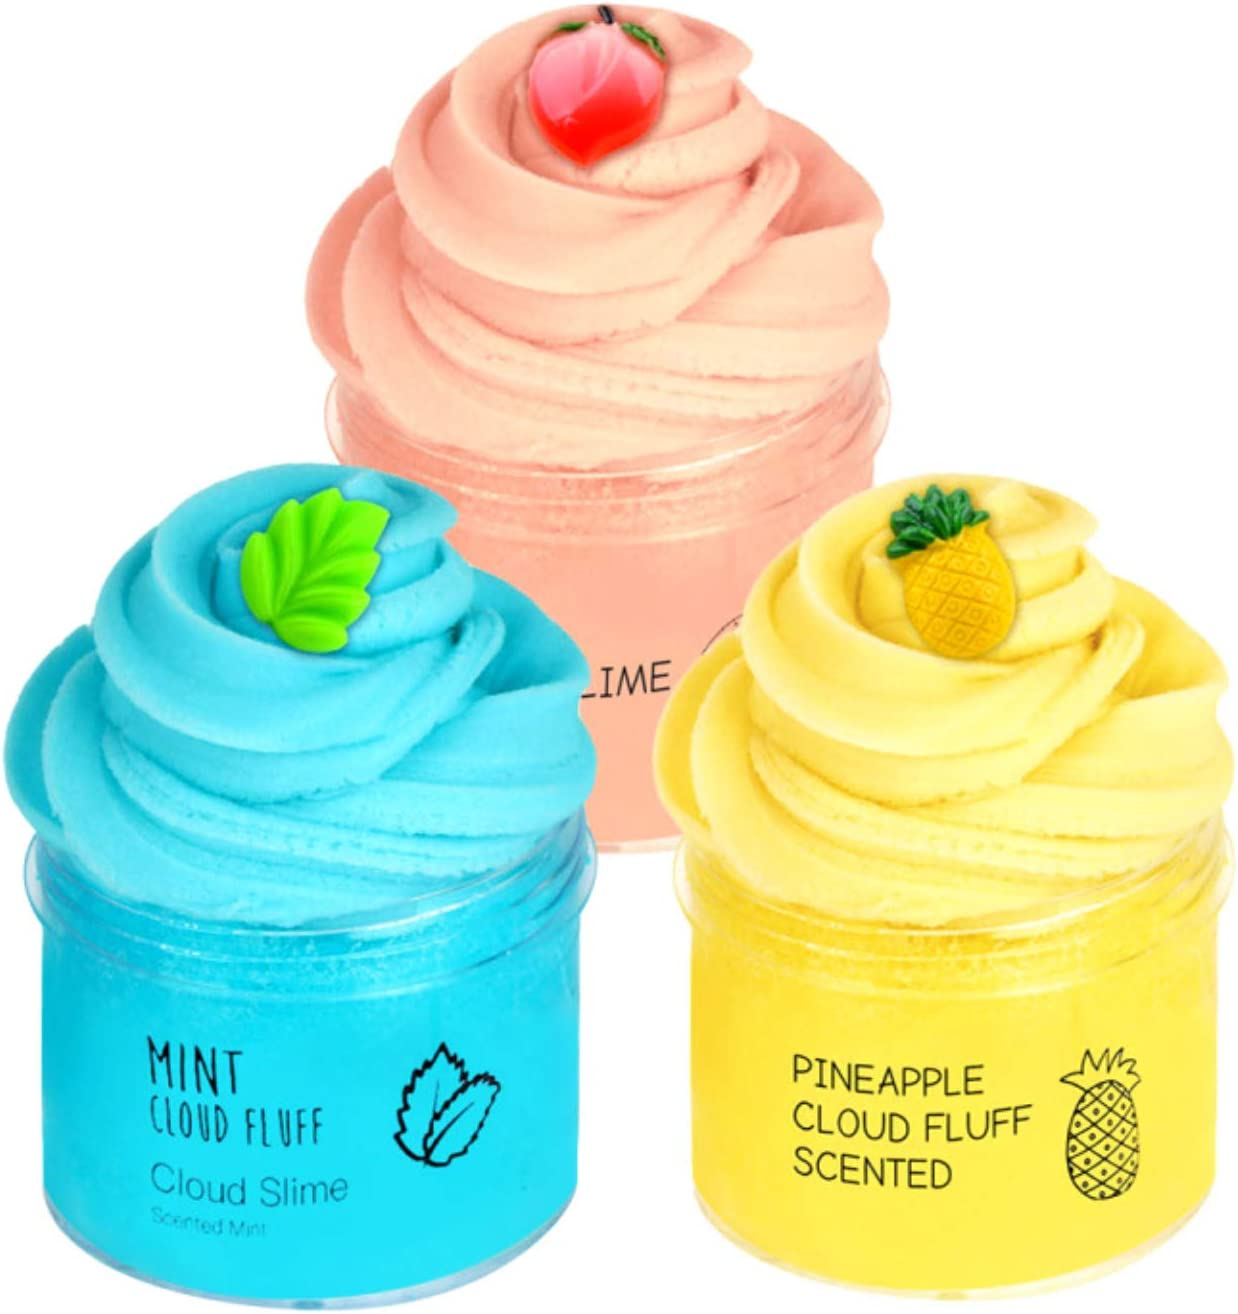 Consepcion 3pack Cloud Slime,with Mint Leaf Slime,Peach Slime,Watermelon Slime,Super Soft and Non-Sticky Slime for Boy and Girl